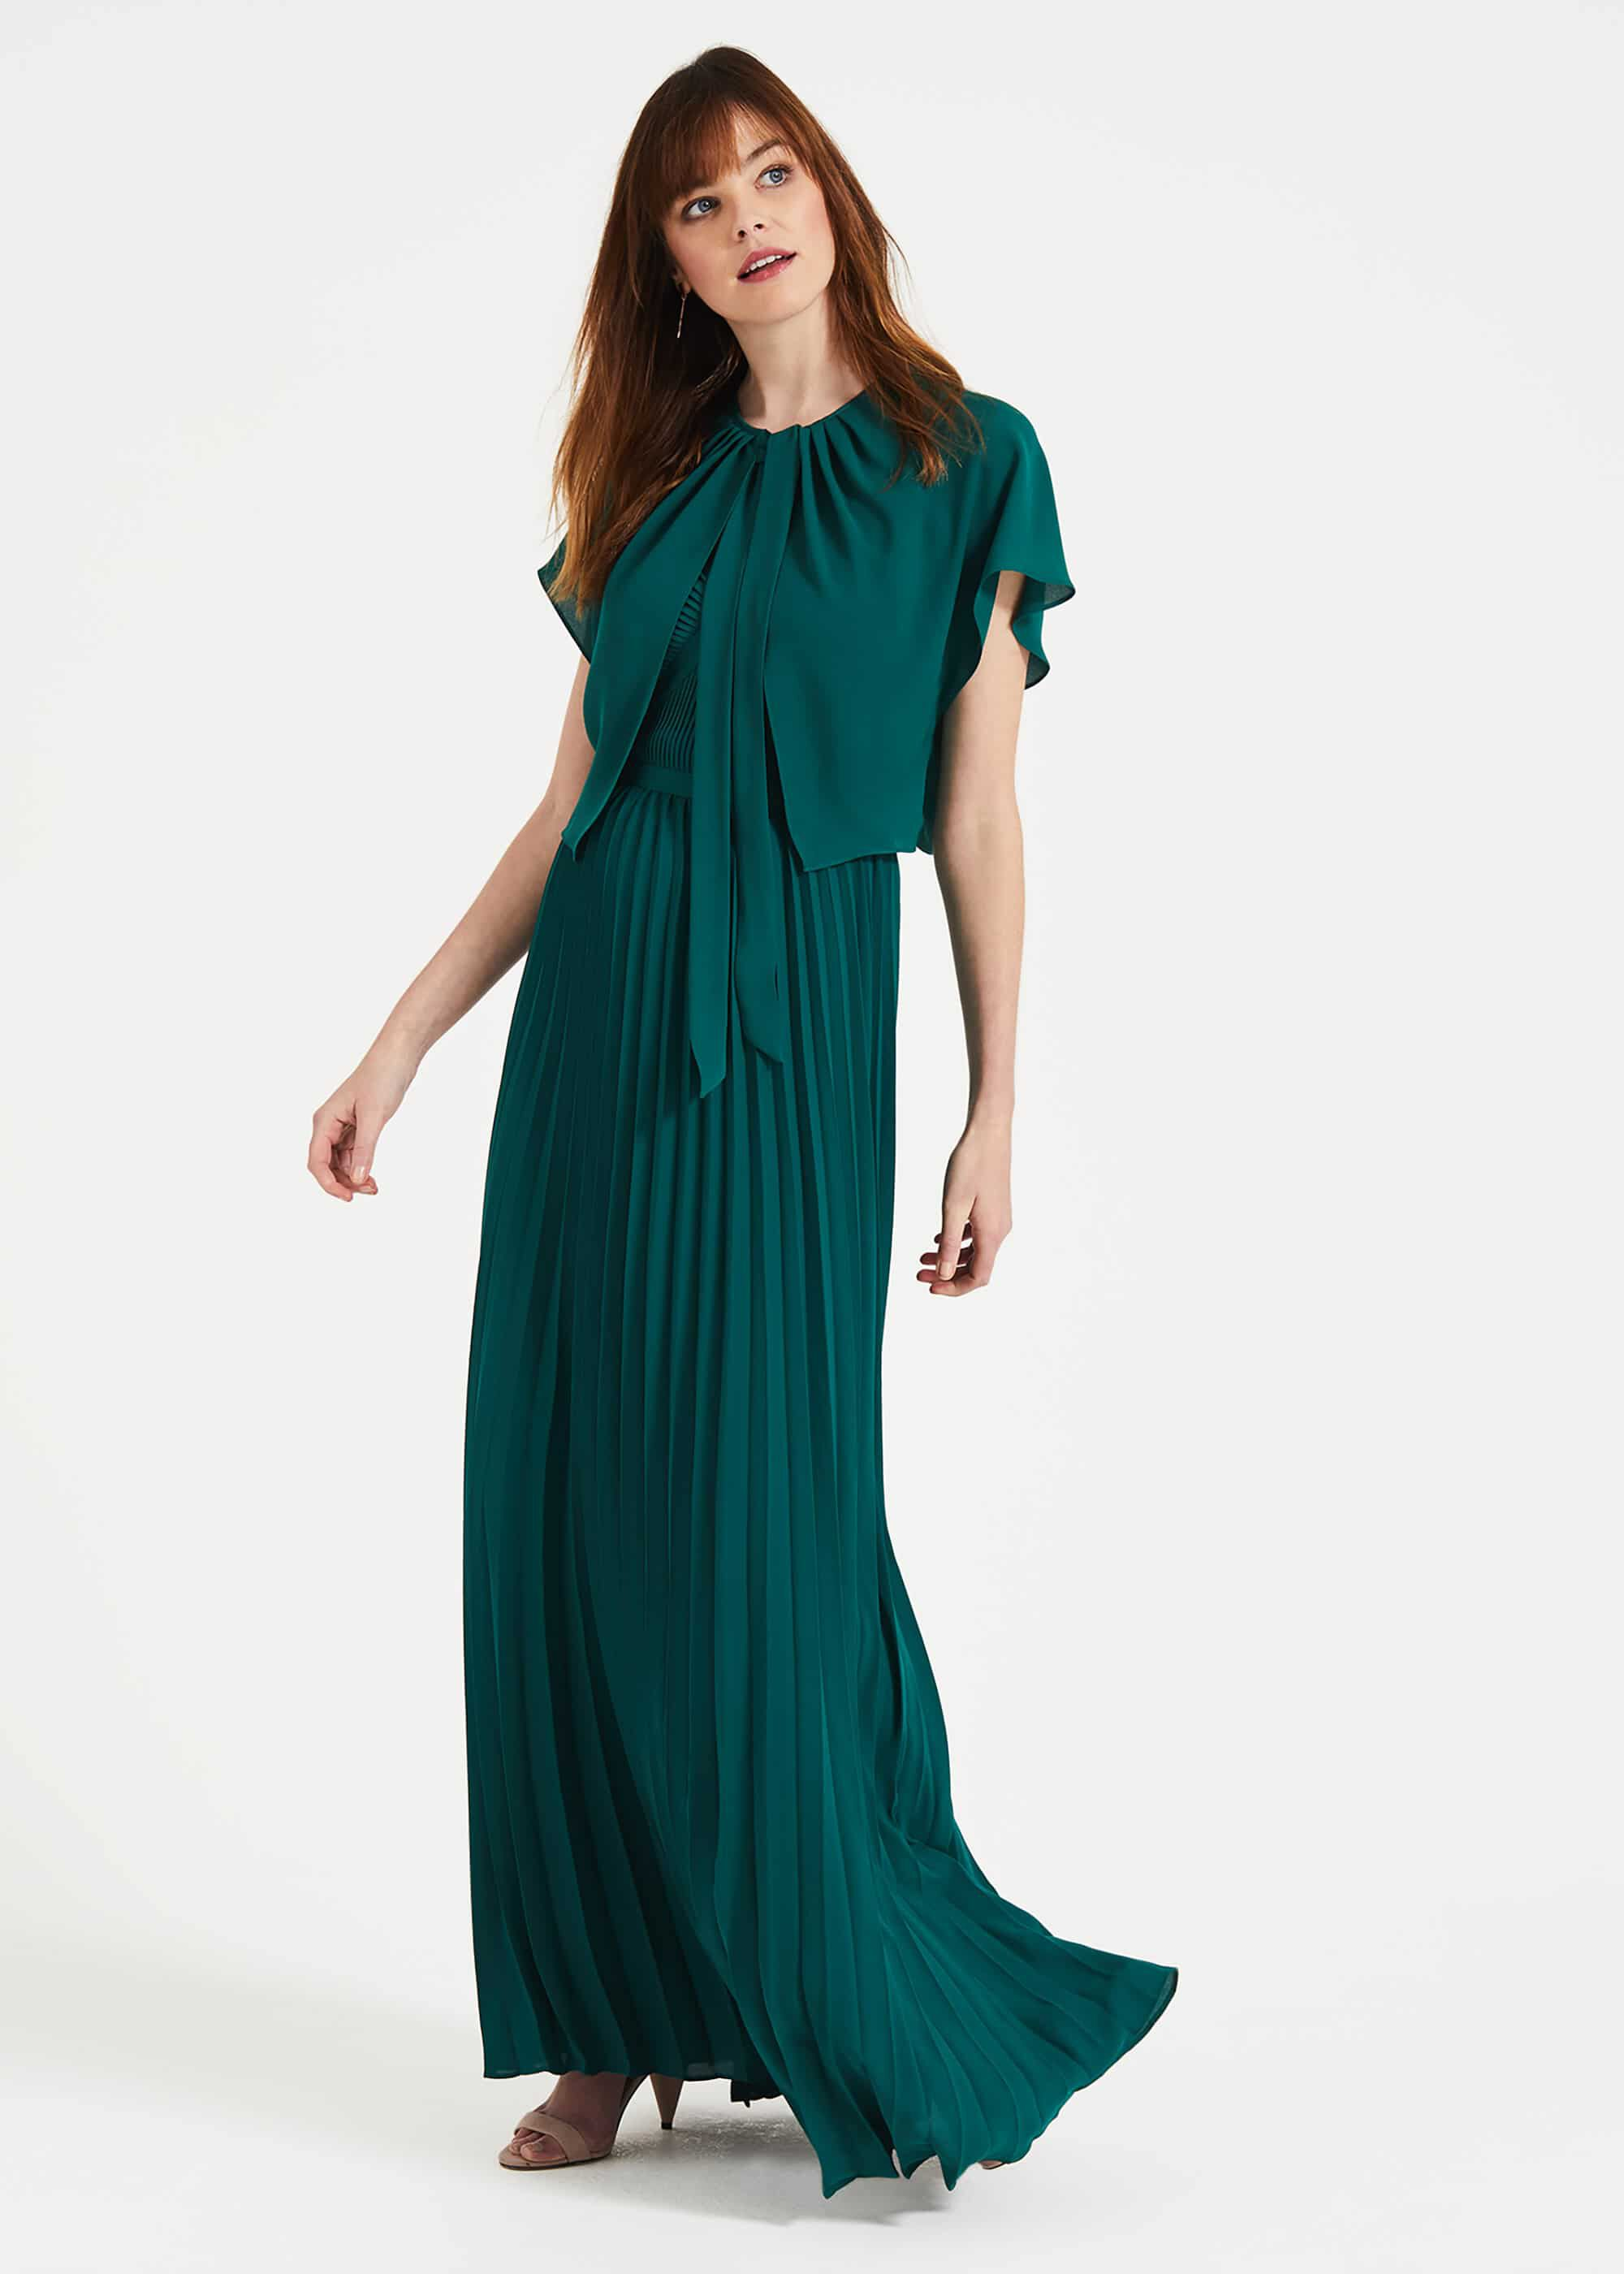 70s Prom, Formal, Evening, Party Dresses Phase Eight Giovanna Cape Green £25.00 AT vintagedancer.com